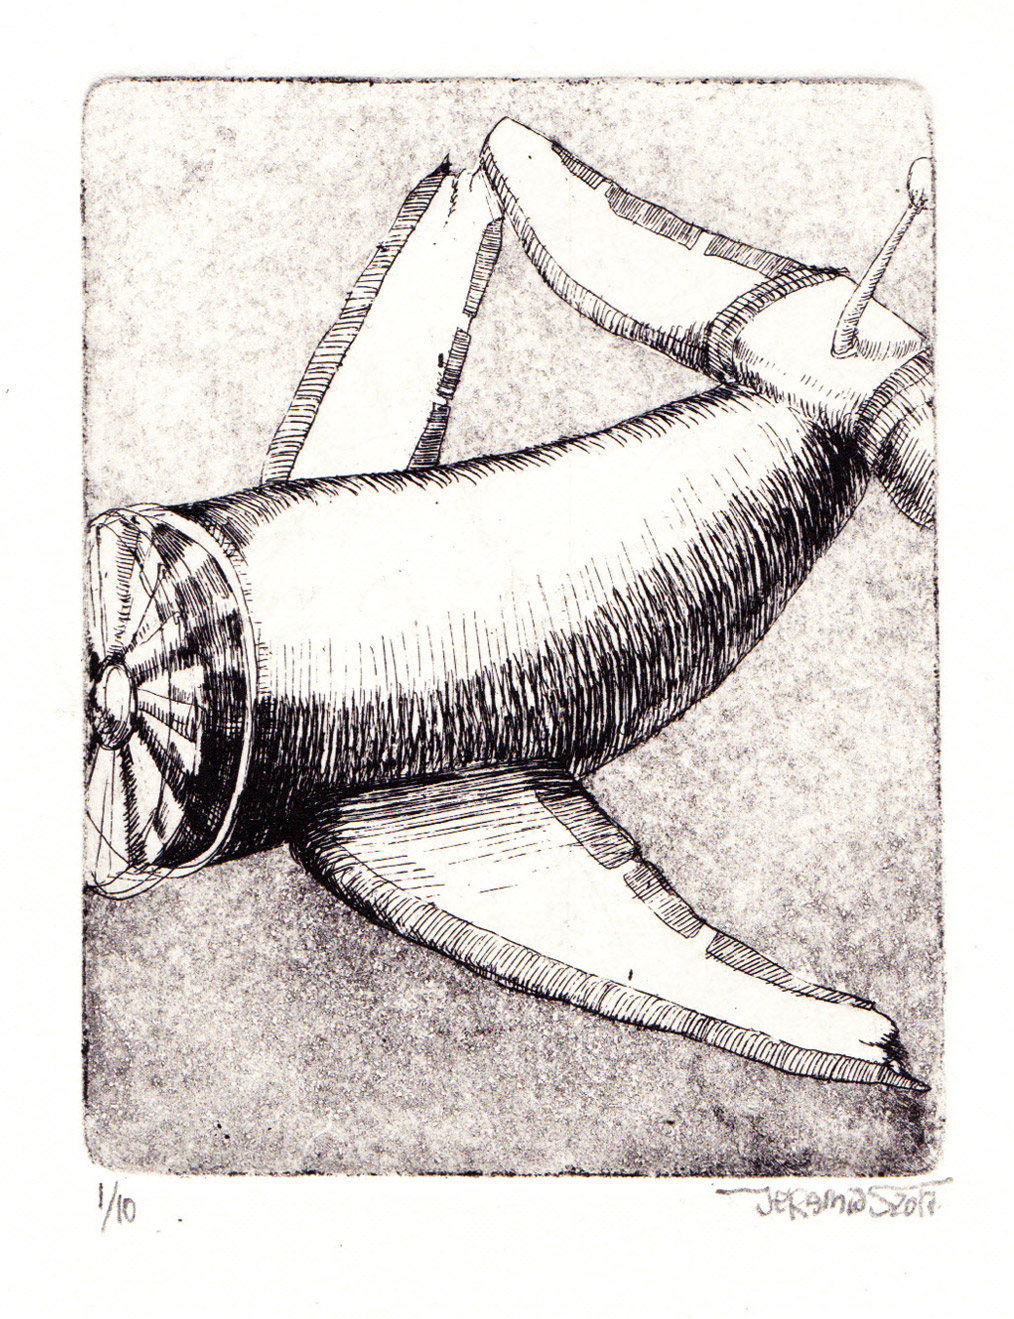 Next Flight; 7,5 x 9,5 cm; etching and aquatint; 2017